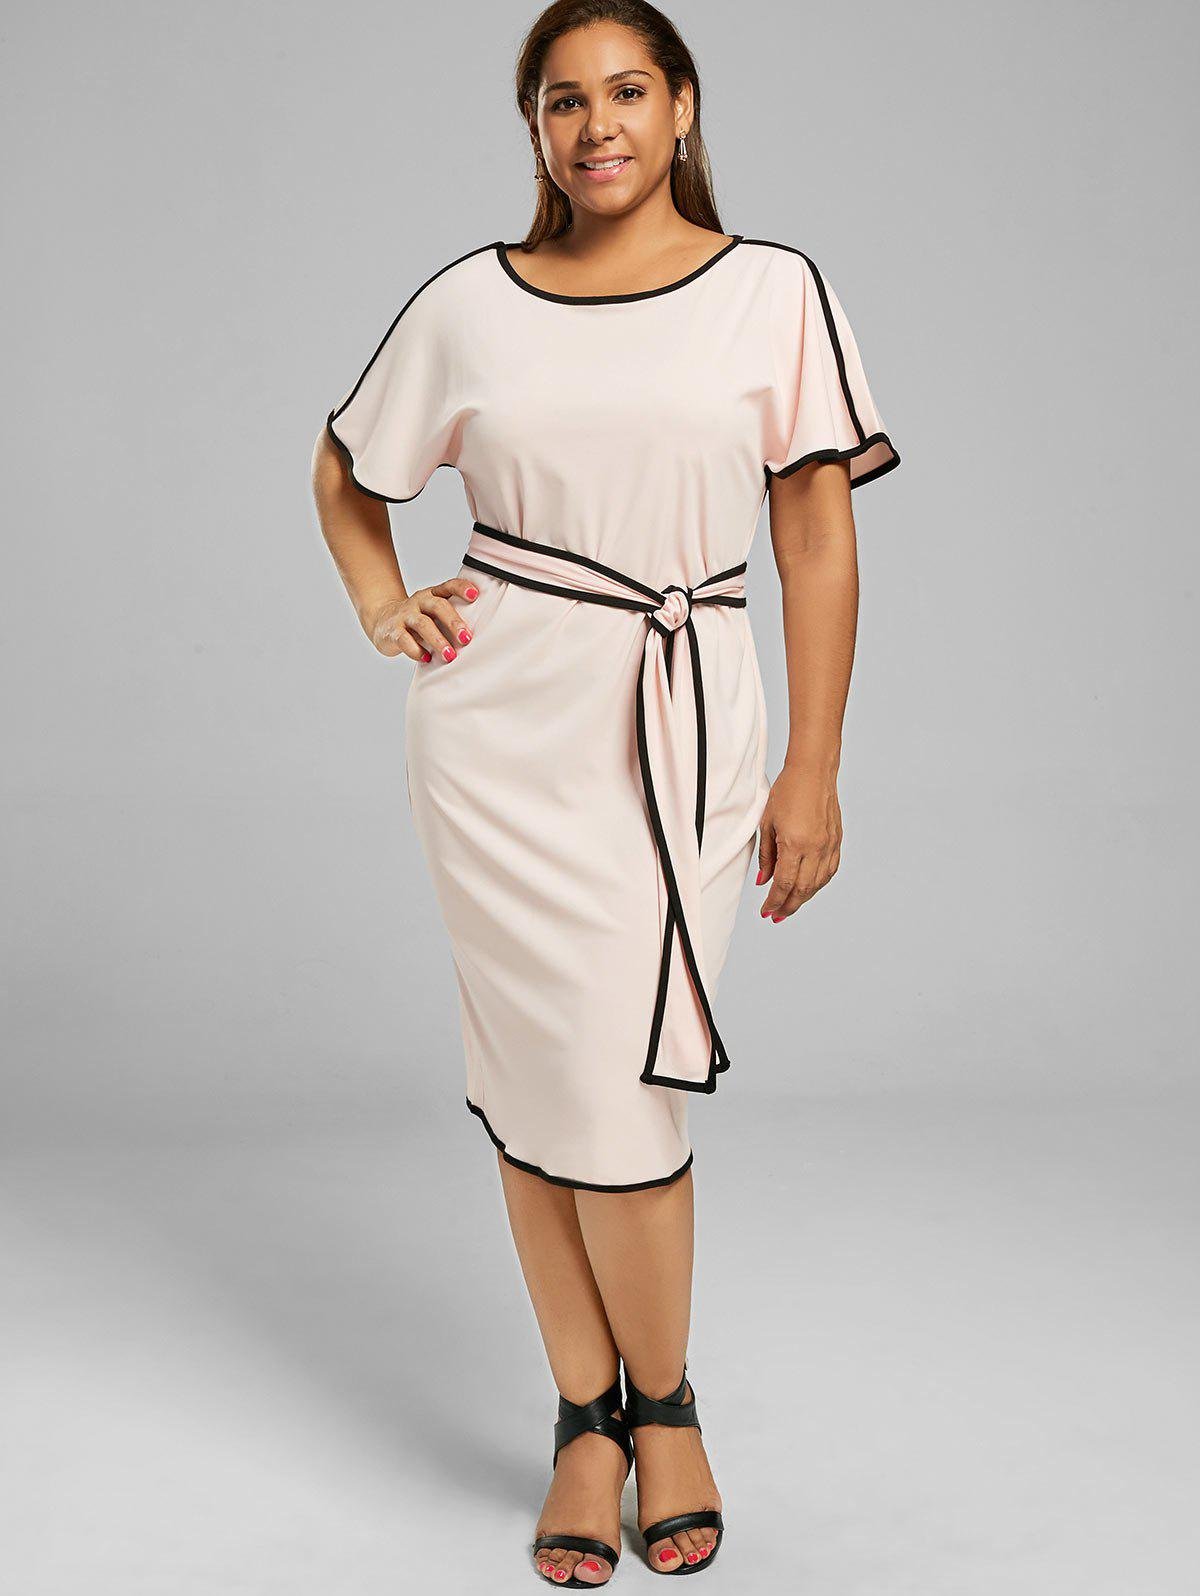 2017 Knee Length Plus Size Modest Dress Pink Xl In Plus Size Dresses